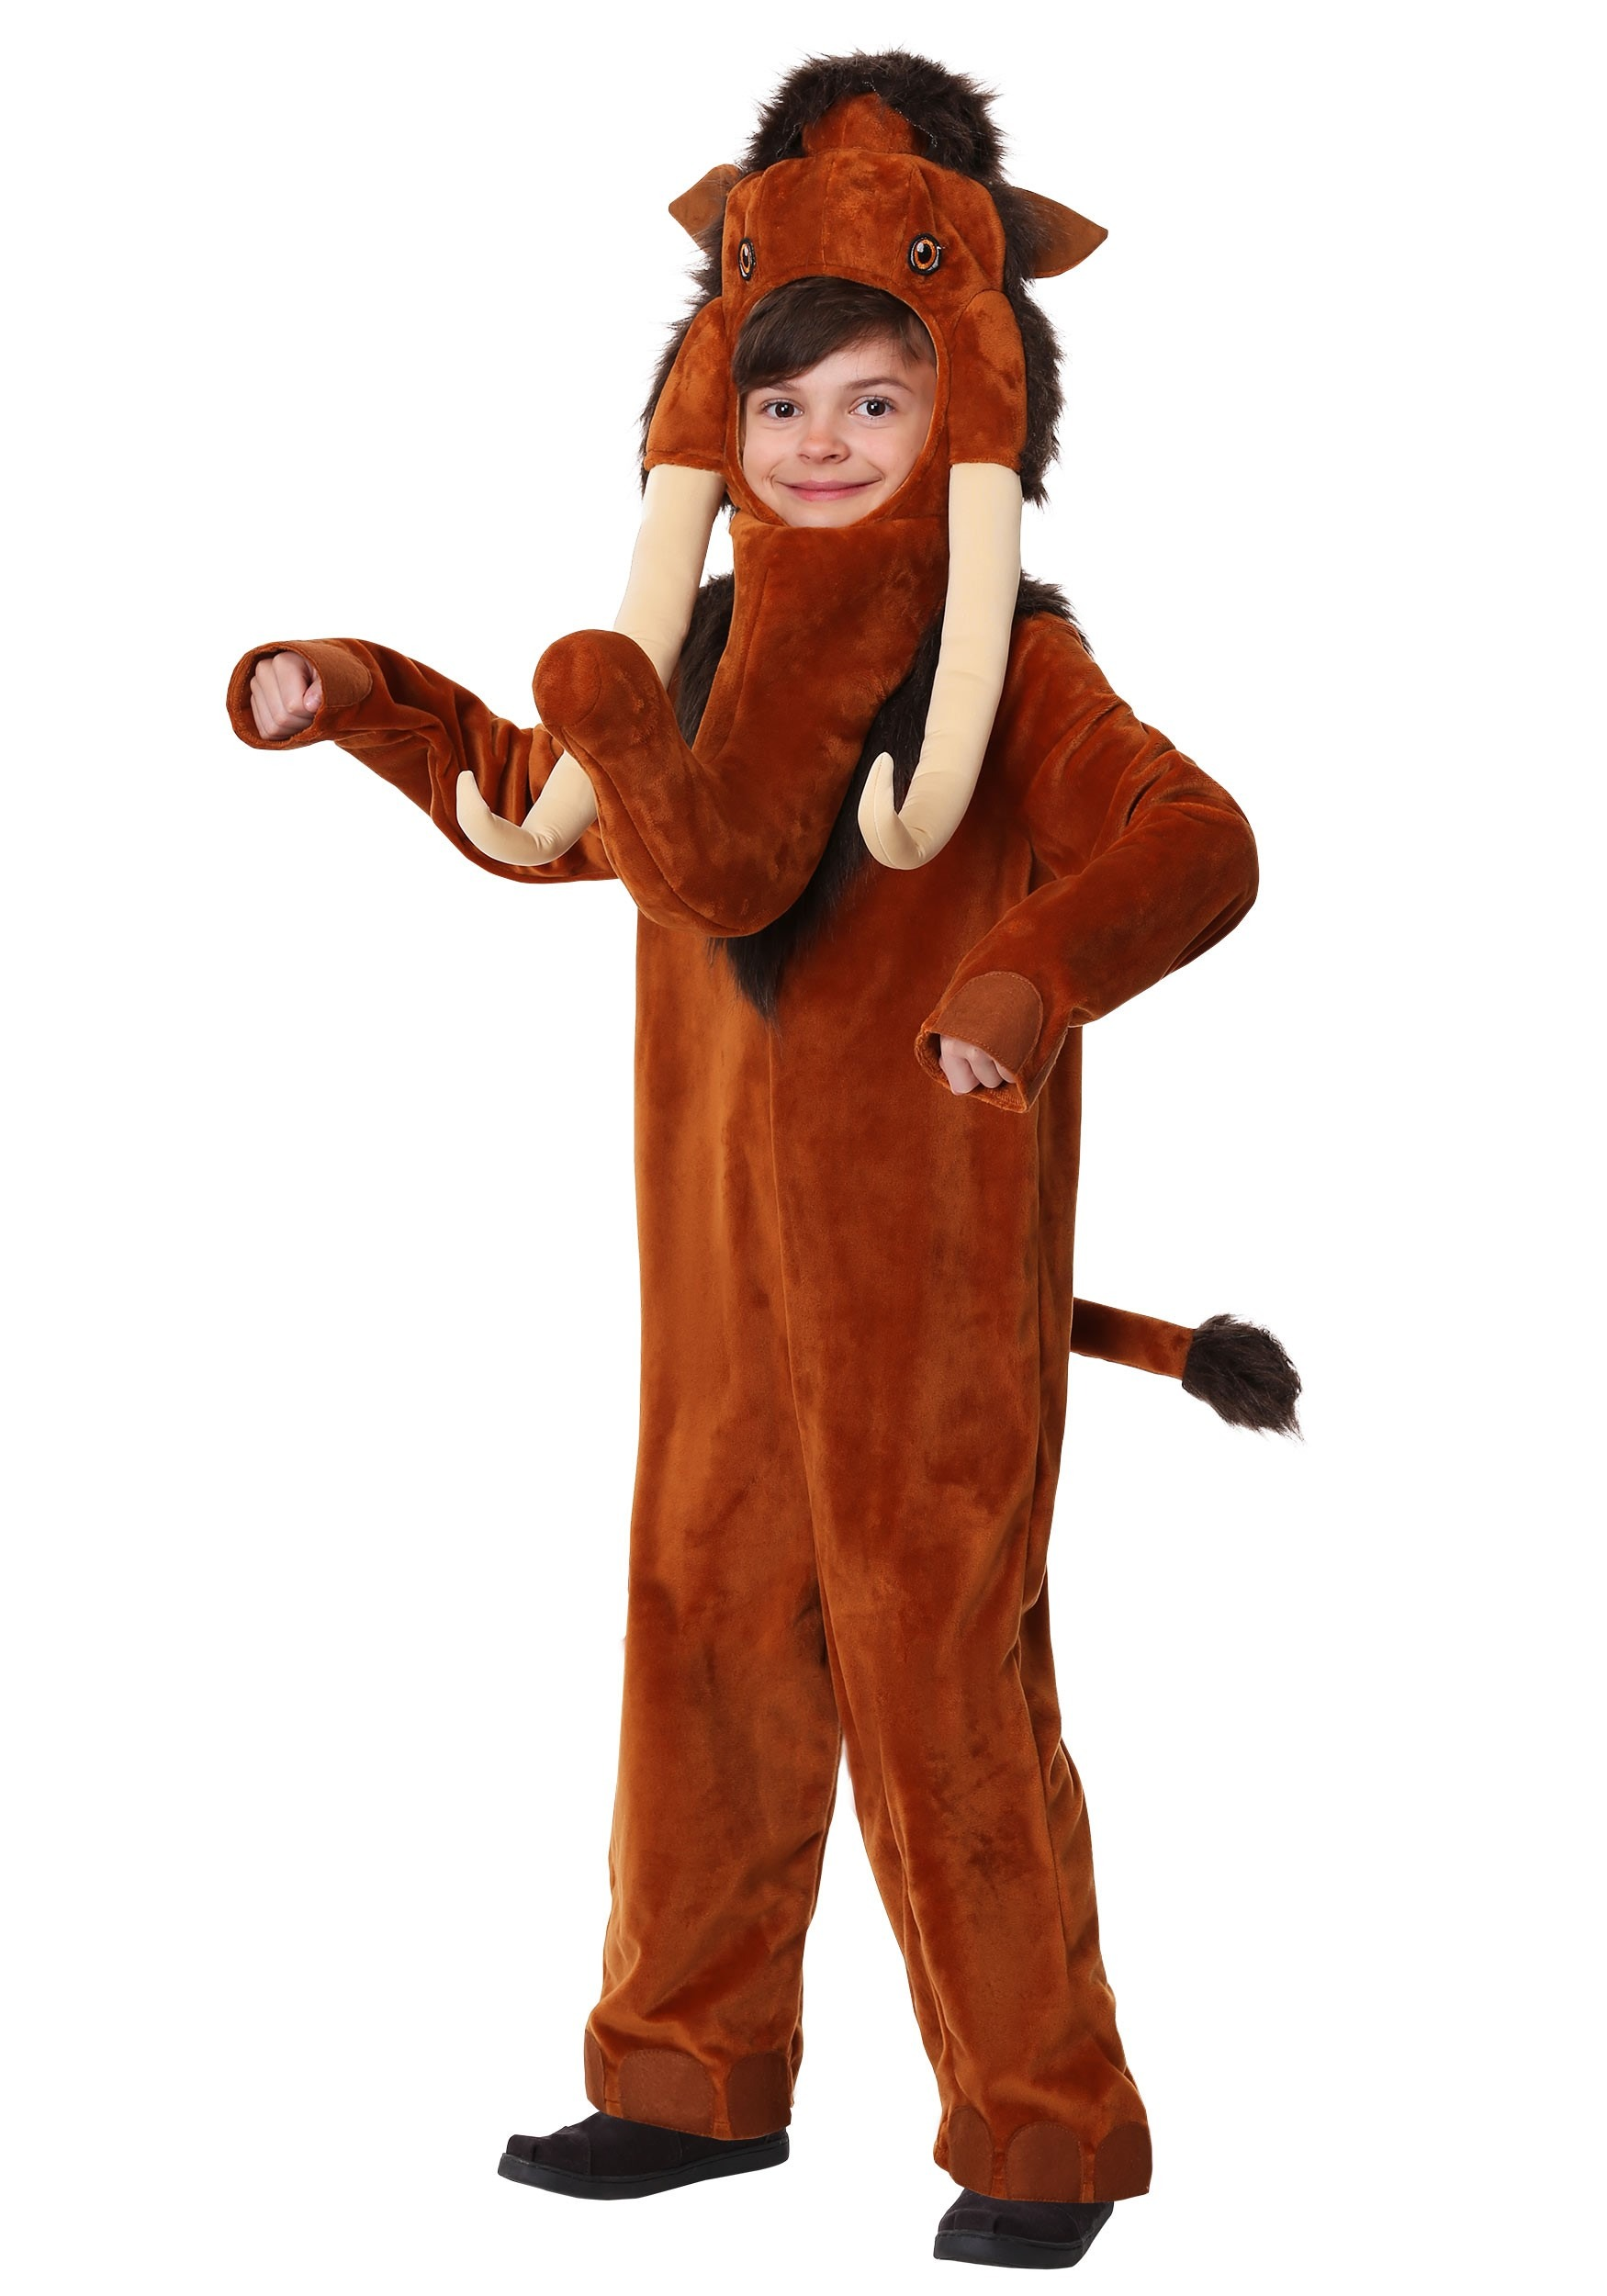 Ice Age Manny the Mammoth Costume